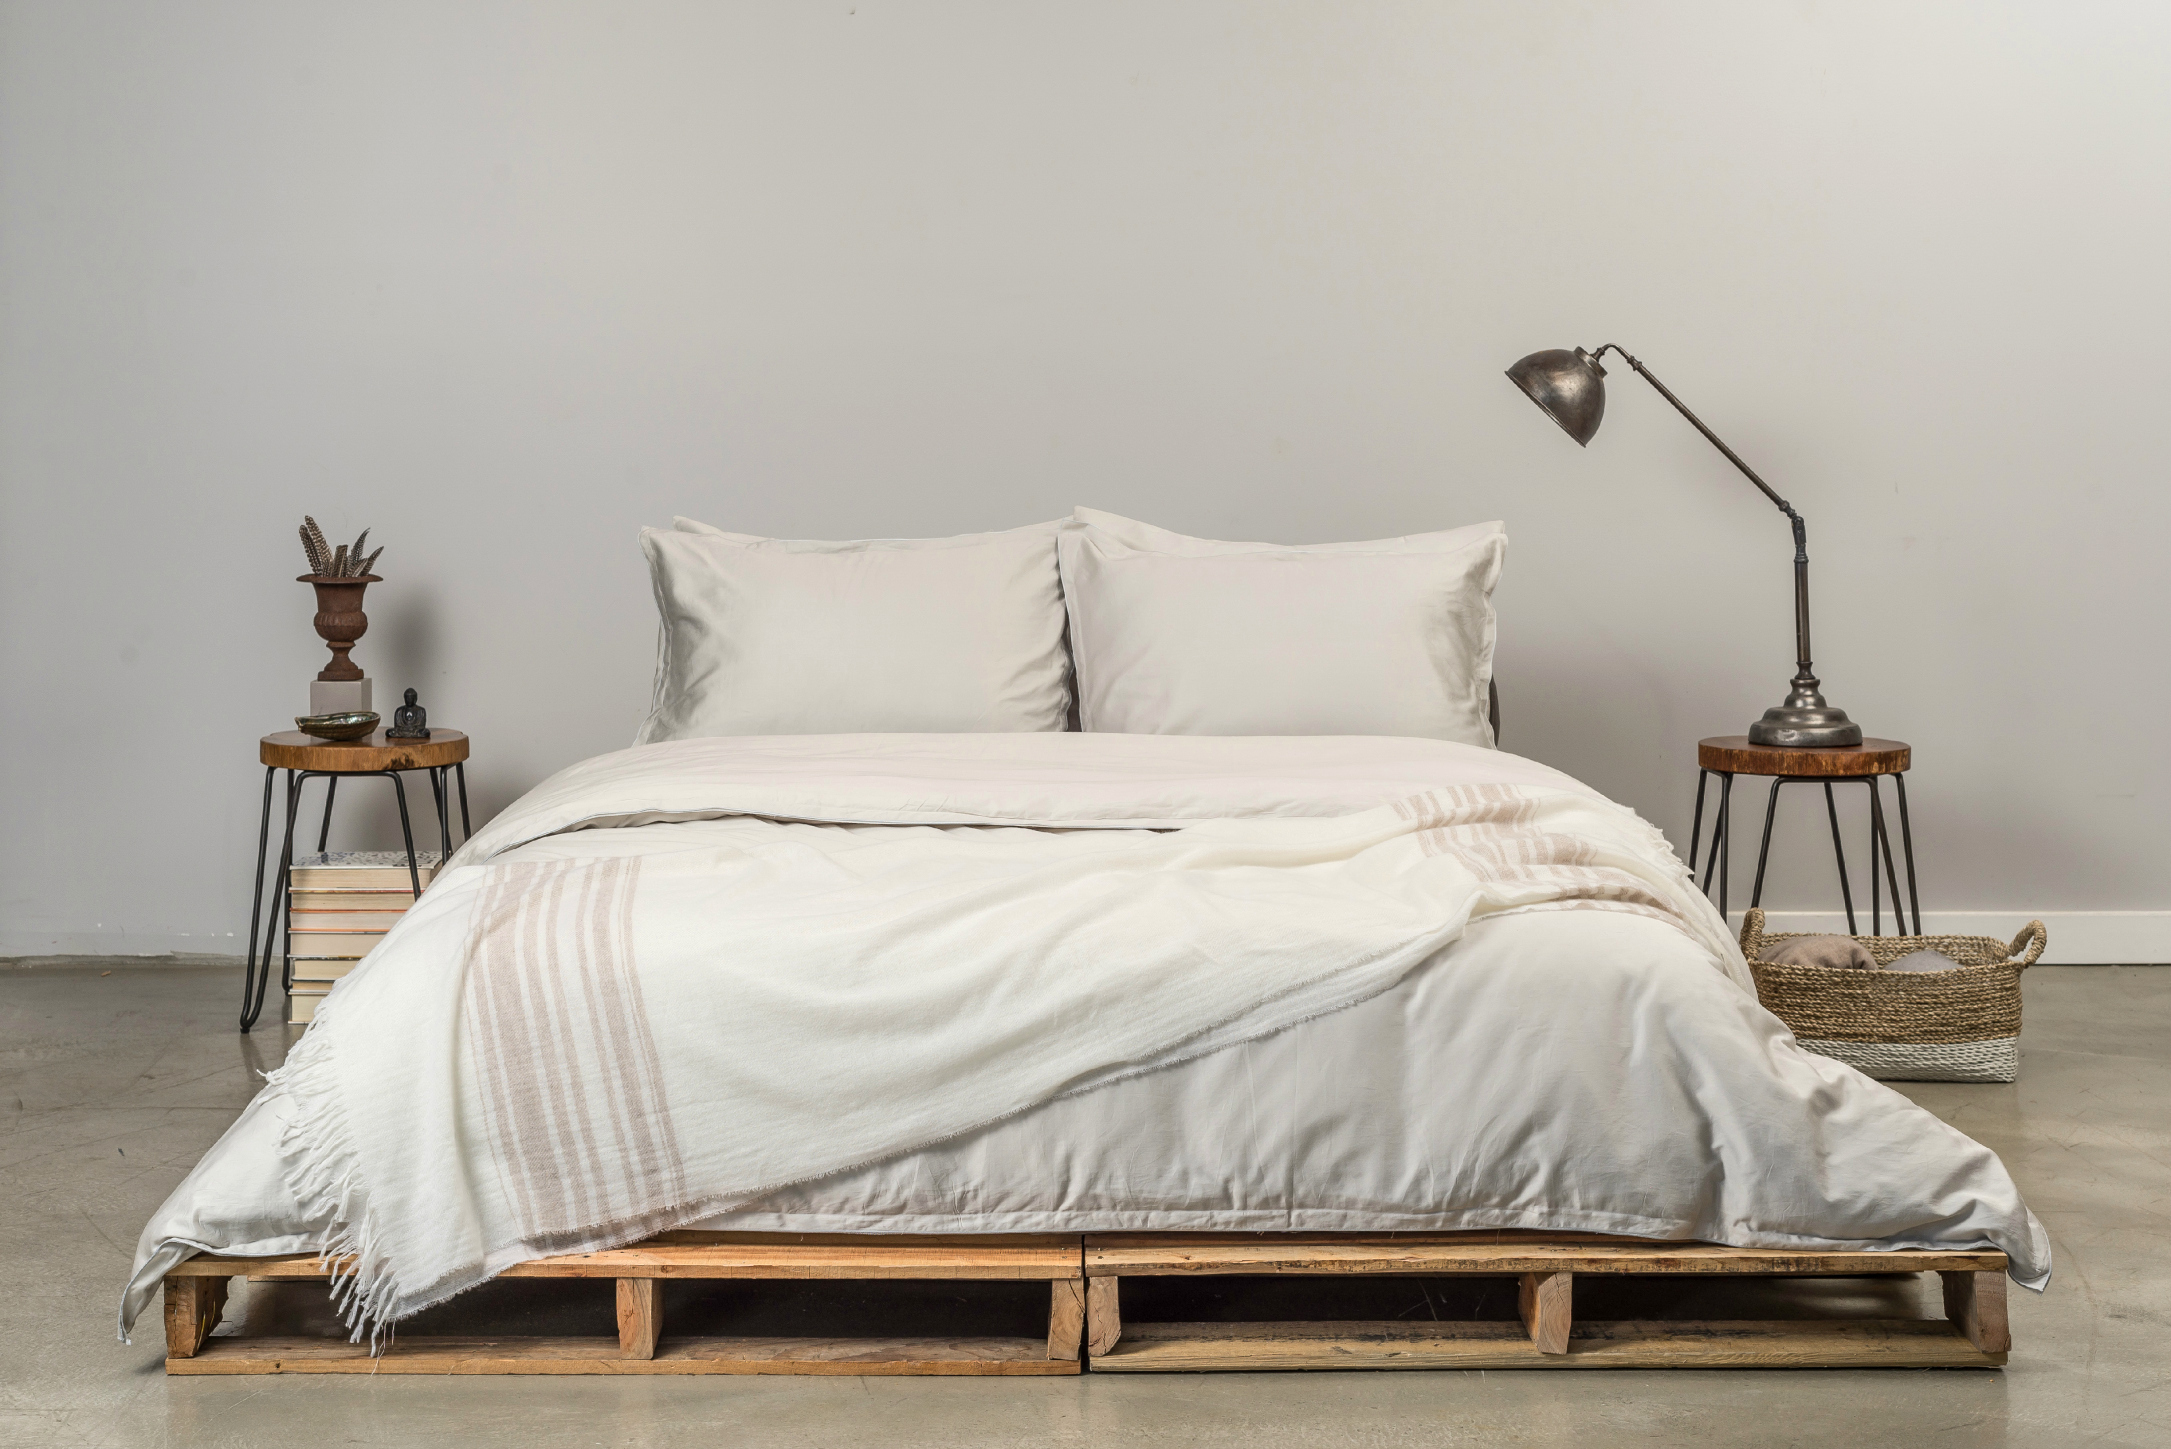 9 Truths About Bedding: How To Use Your Sheets To Get A Good Nightu0027s Sleep